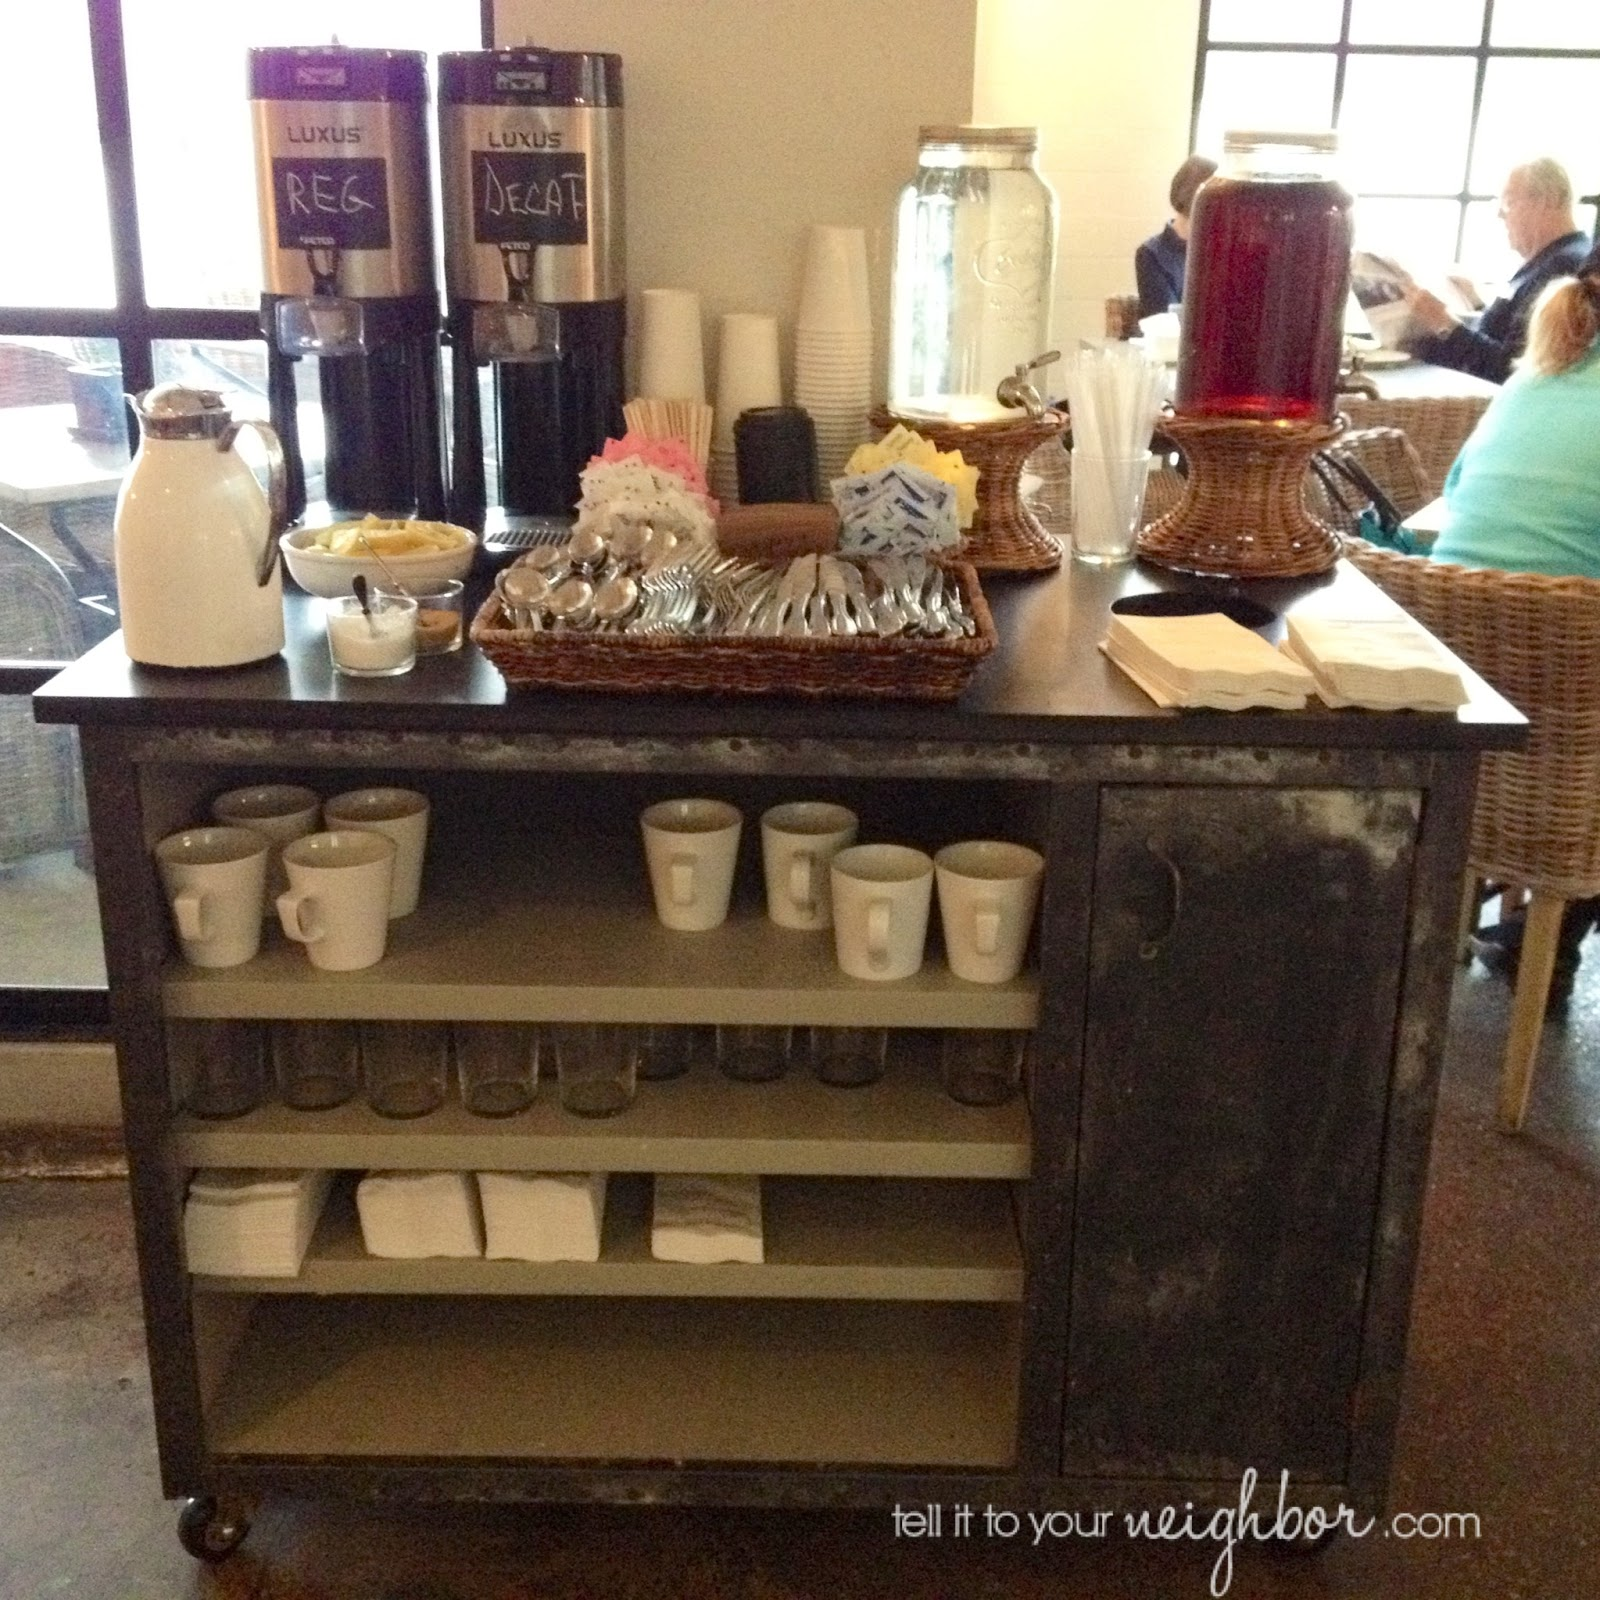 Cart In Our Kitchen At Home Probably Started Tiny S No 5 Their Coffee Station Has Everything One Spot Available For Us To Help Ourselves